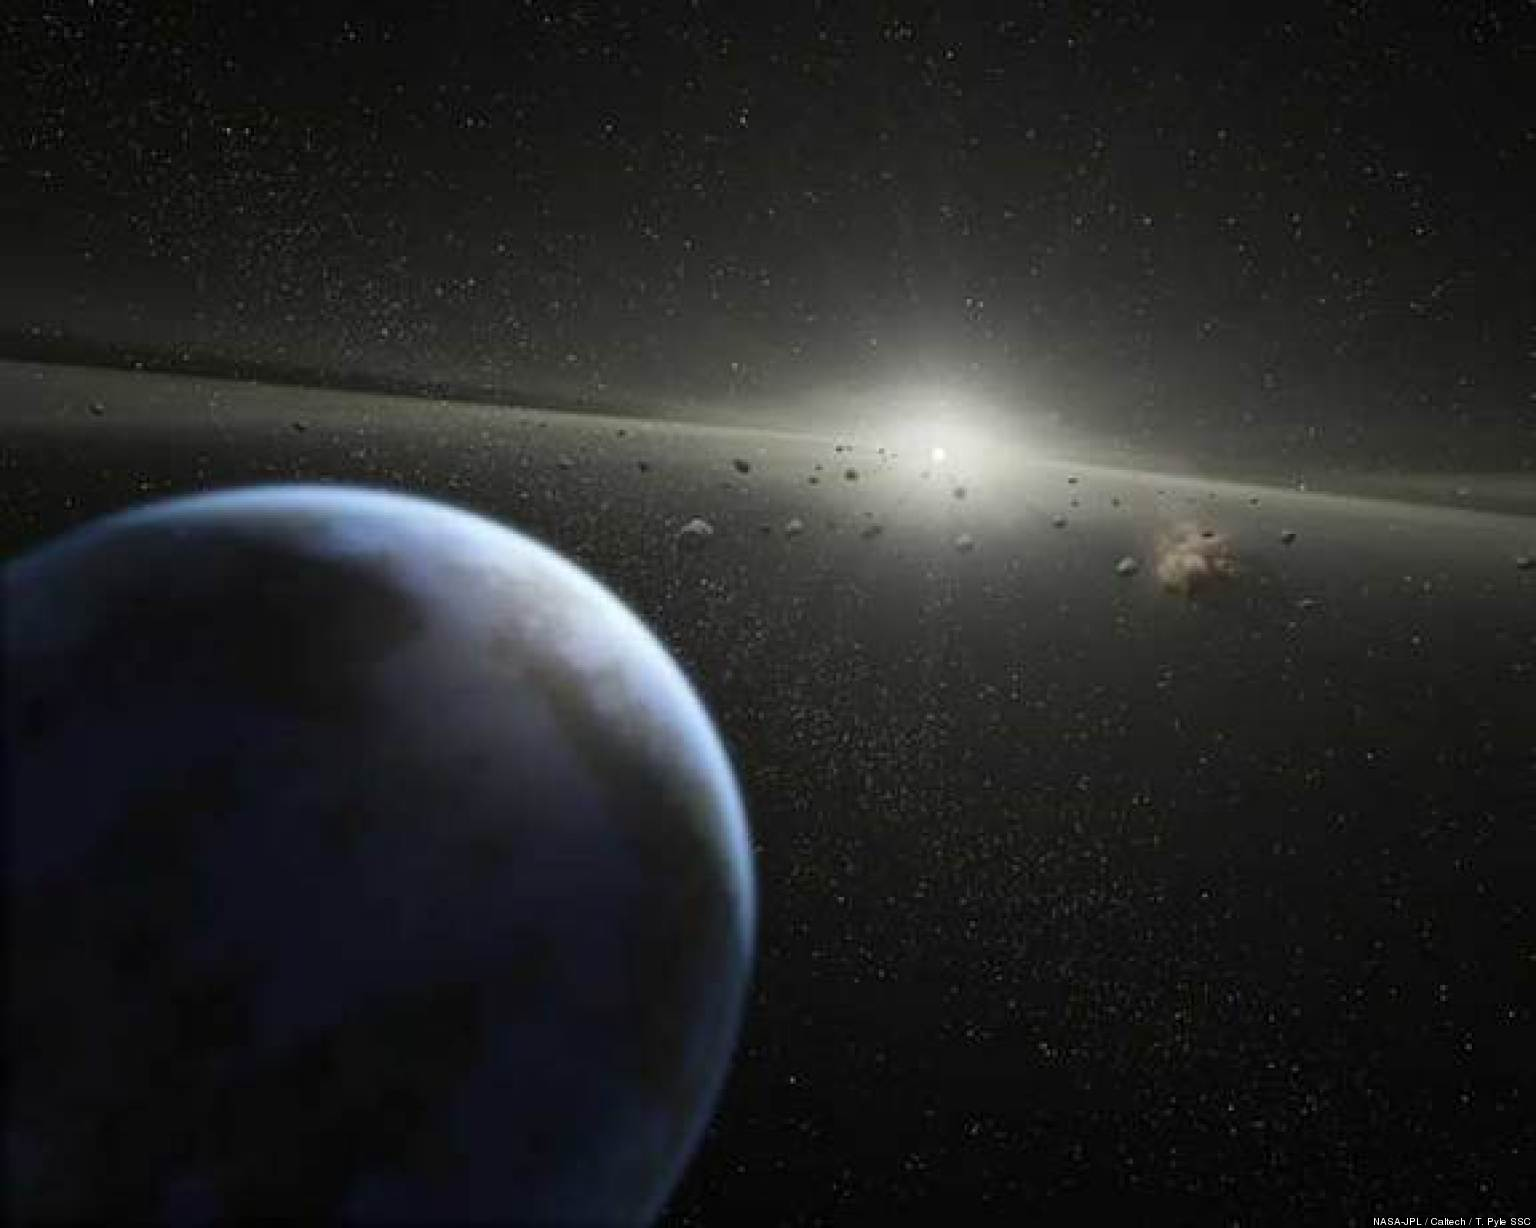 aliens in our solar system - photo #23